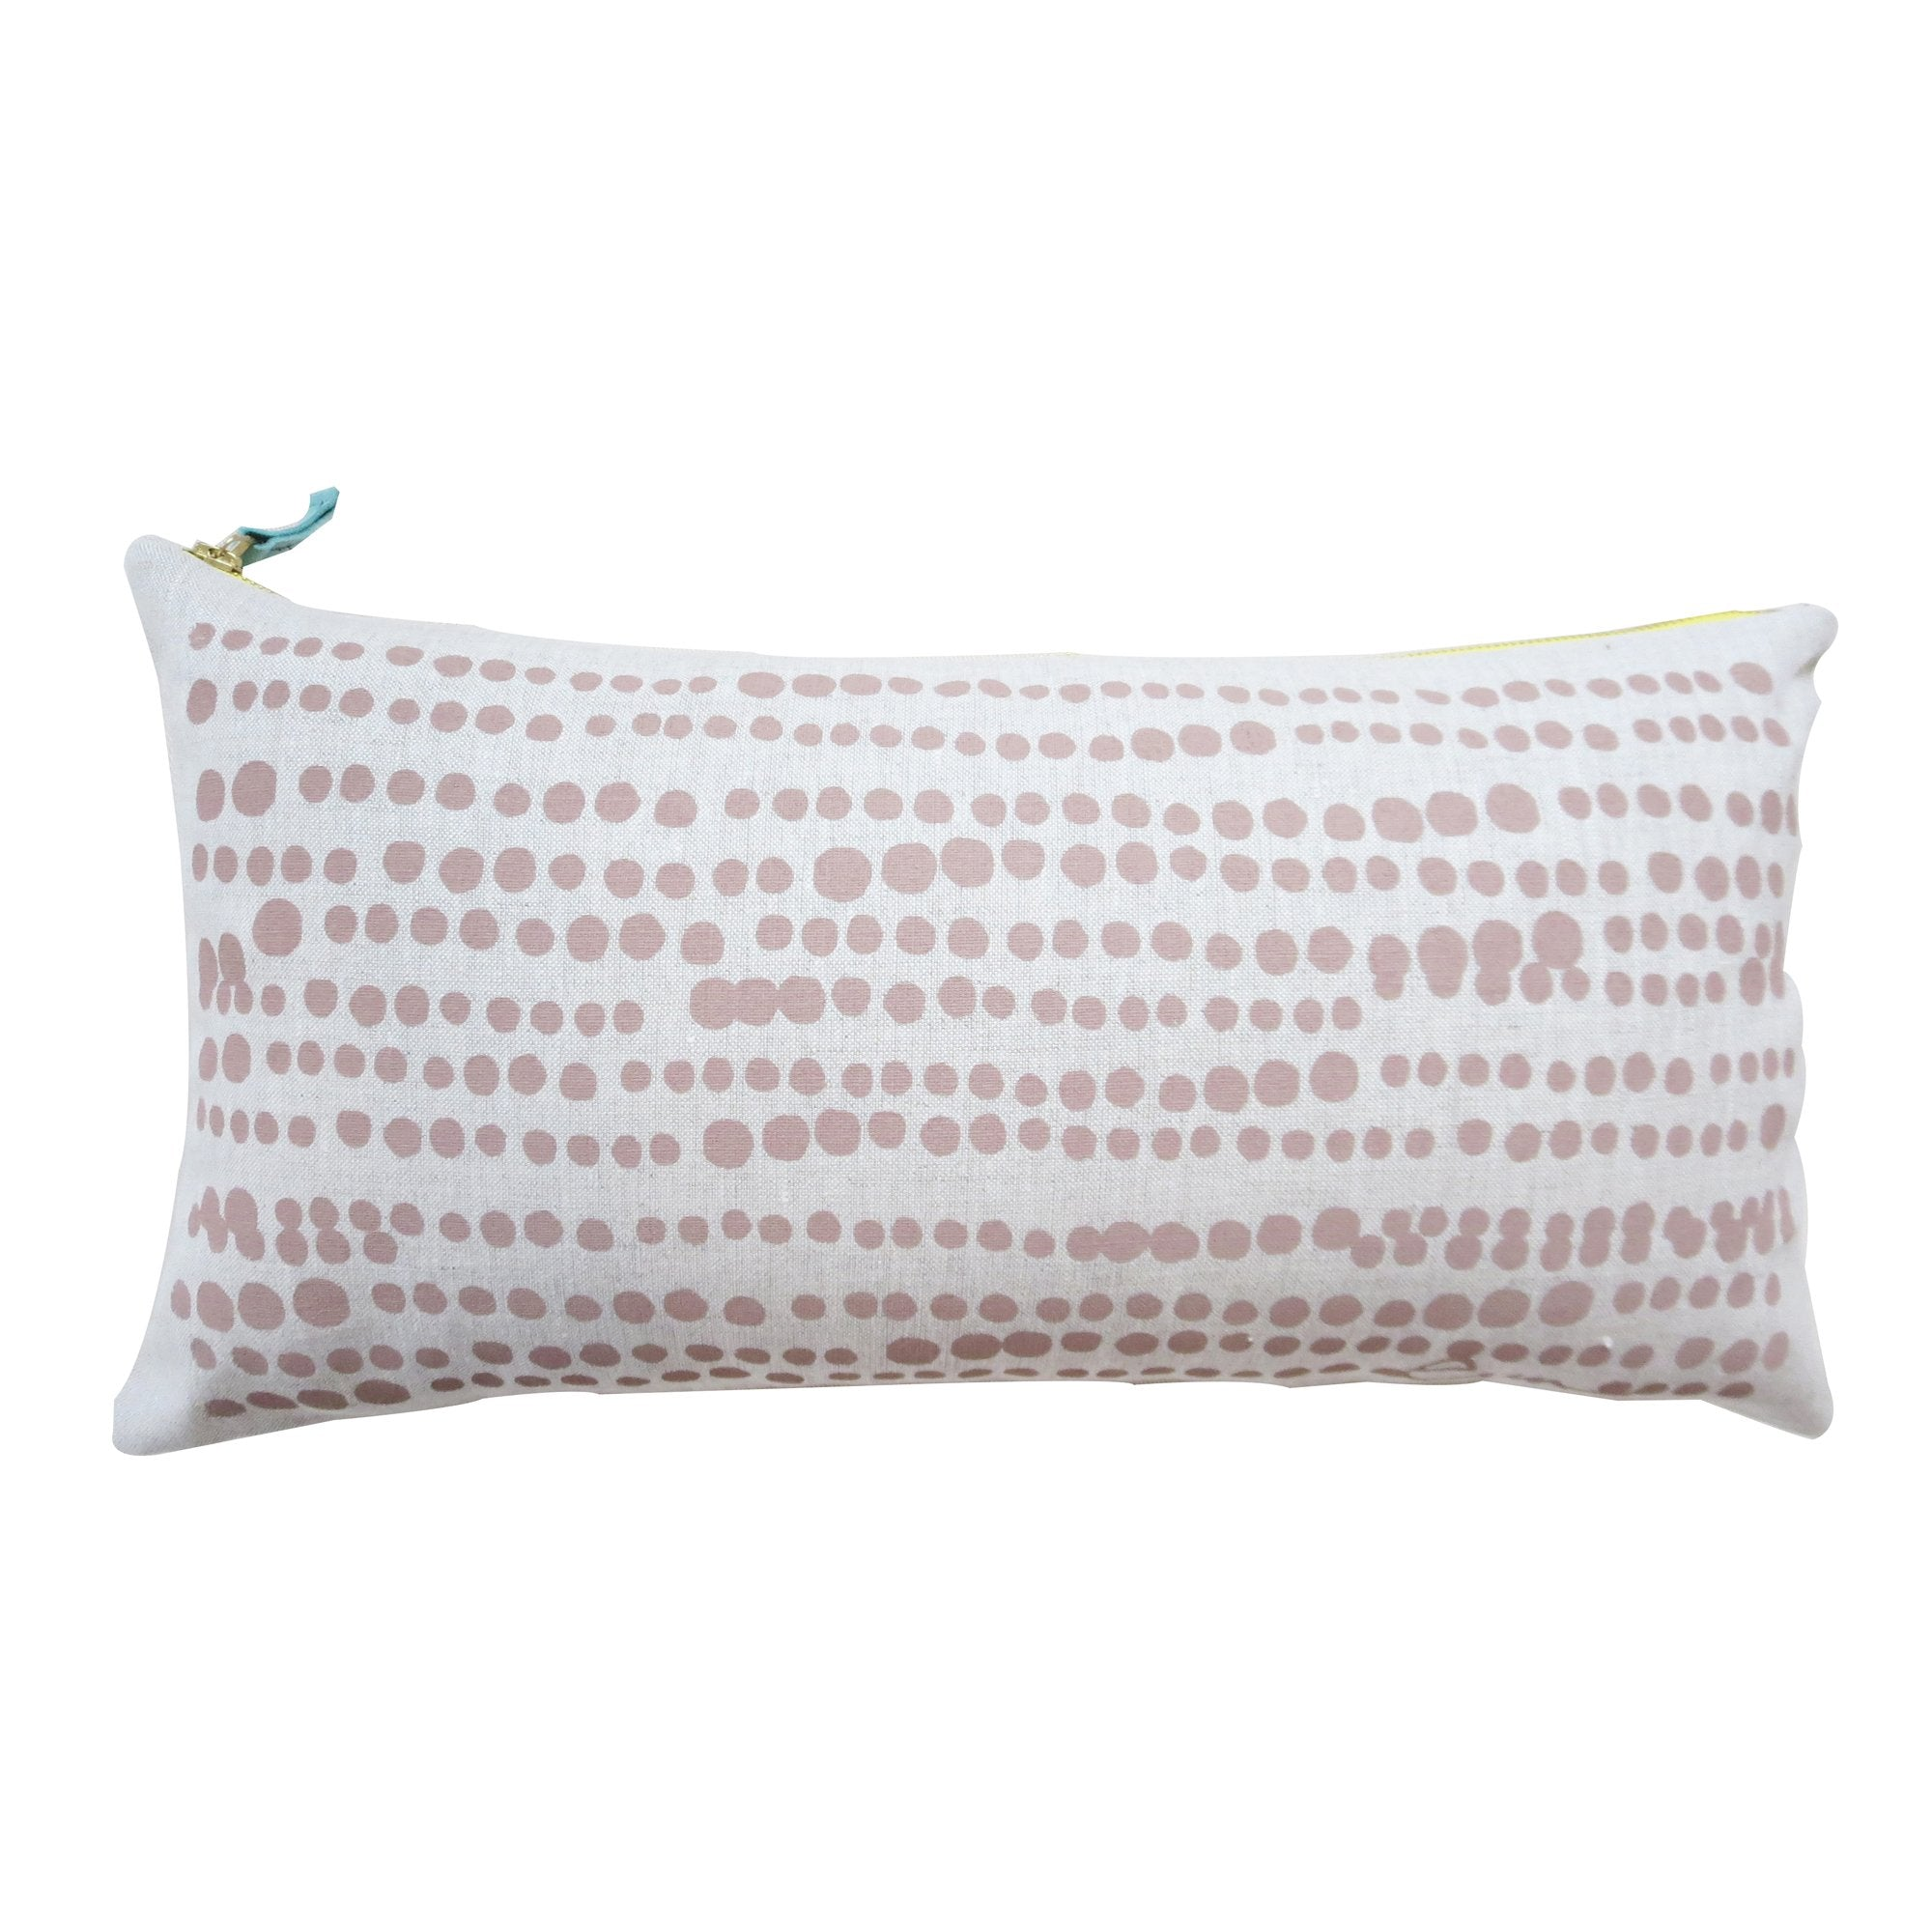 HILARY LINEN PILLOW COVER IN TAUPE BROWN ON OATMEAL